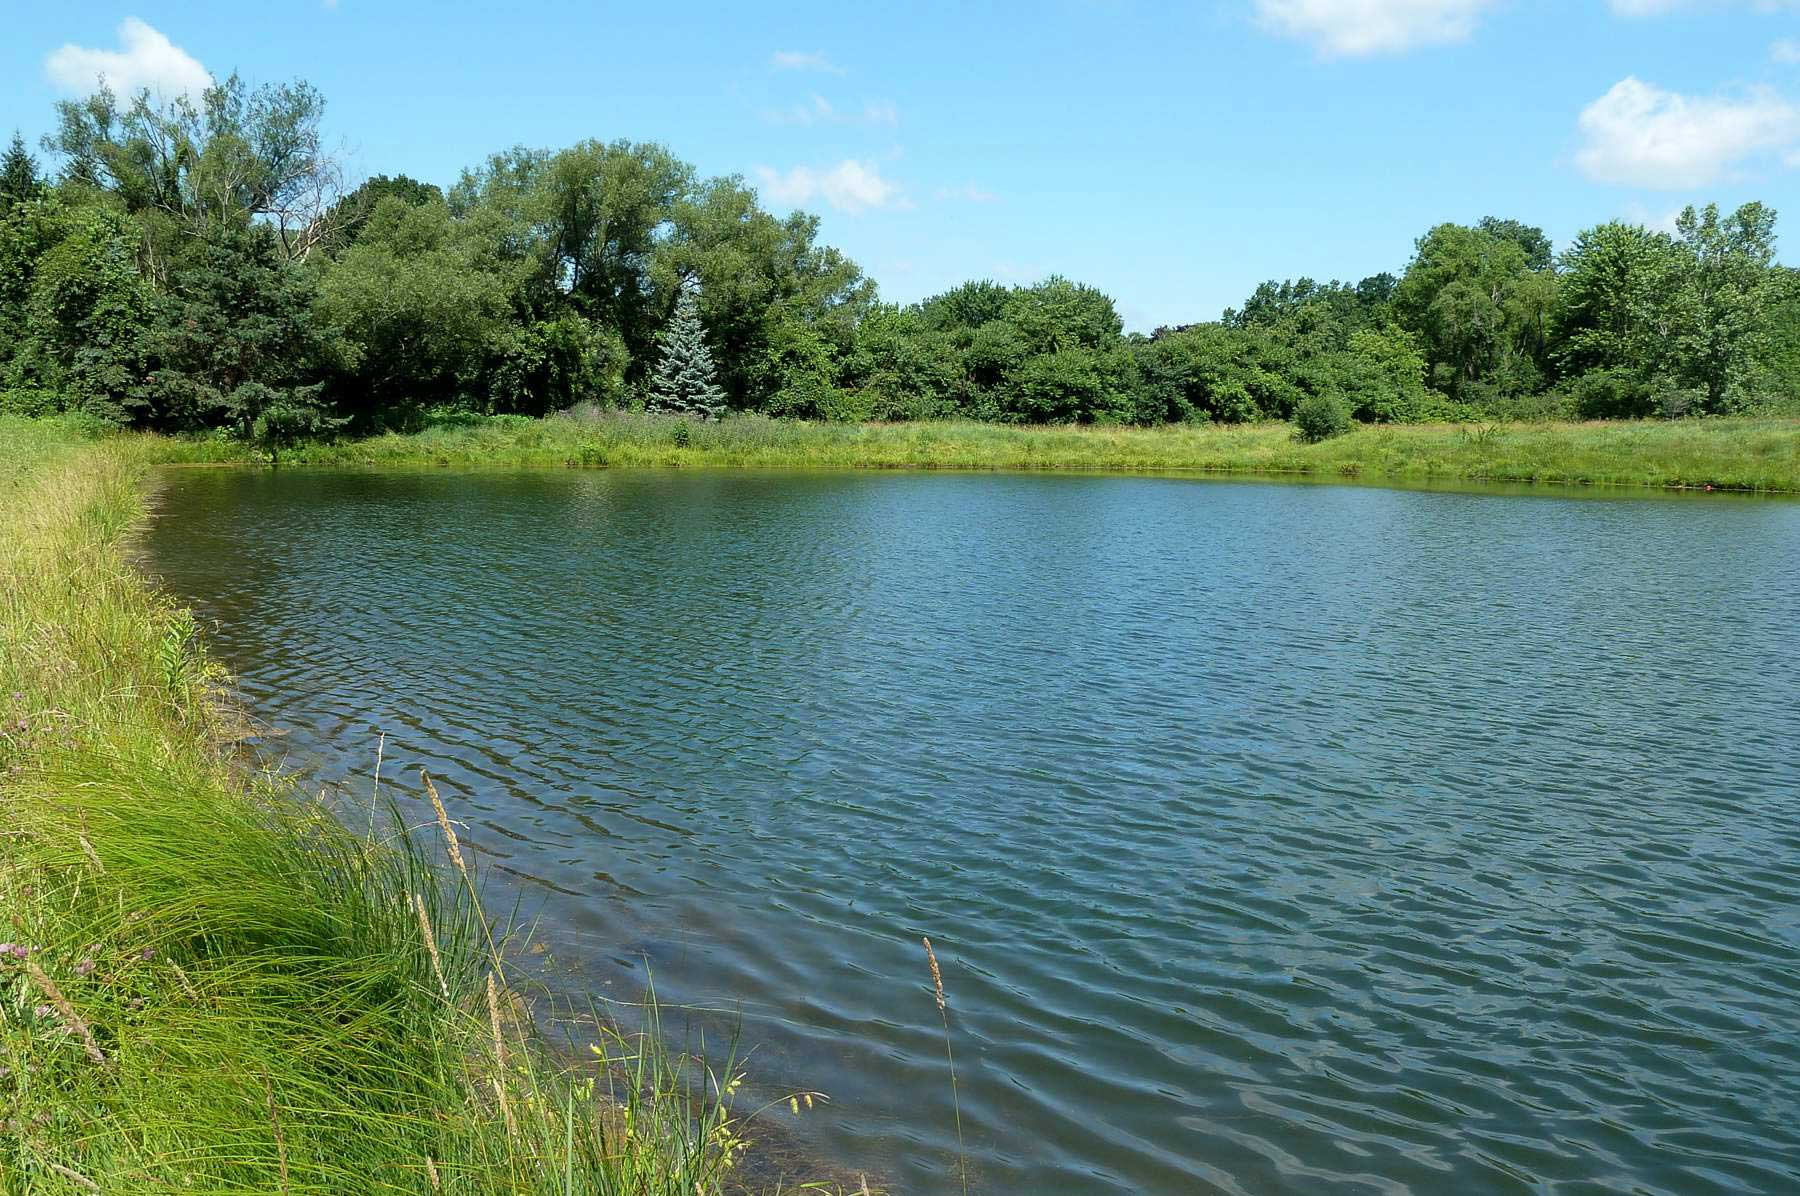 Fishing Pond and Trees